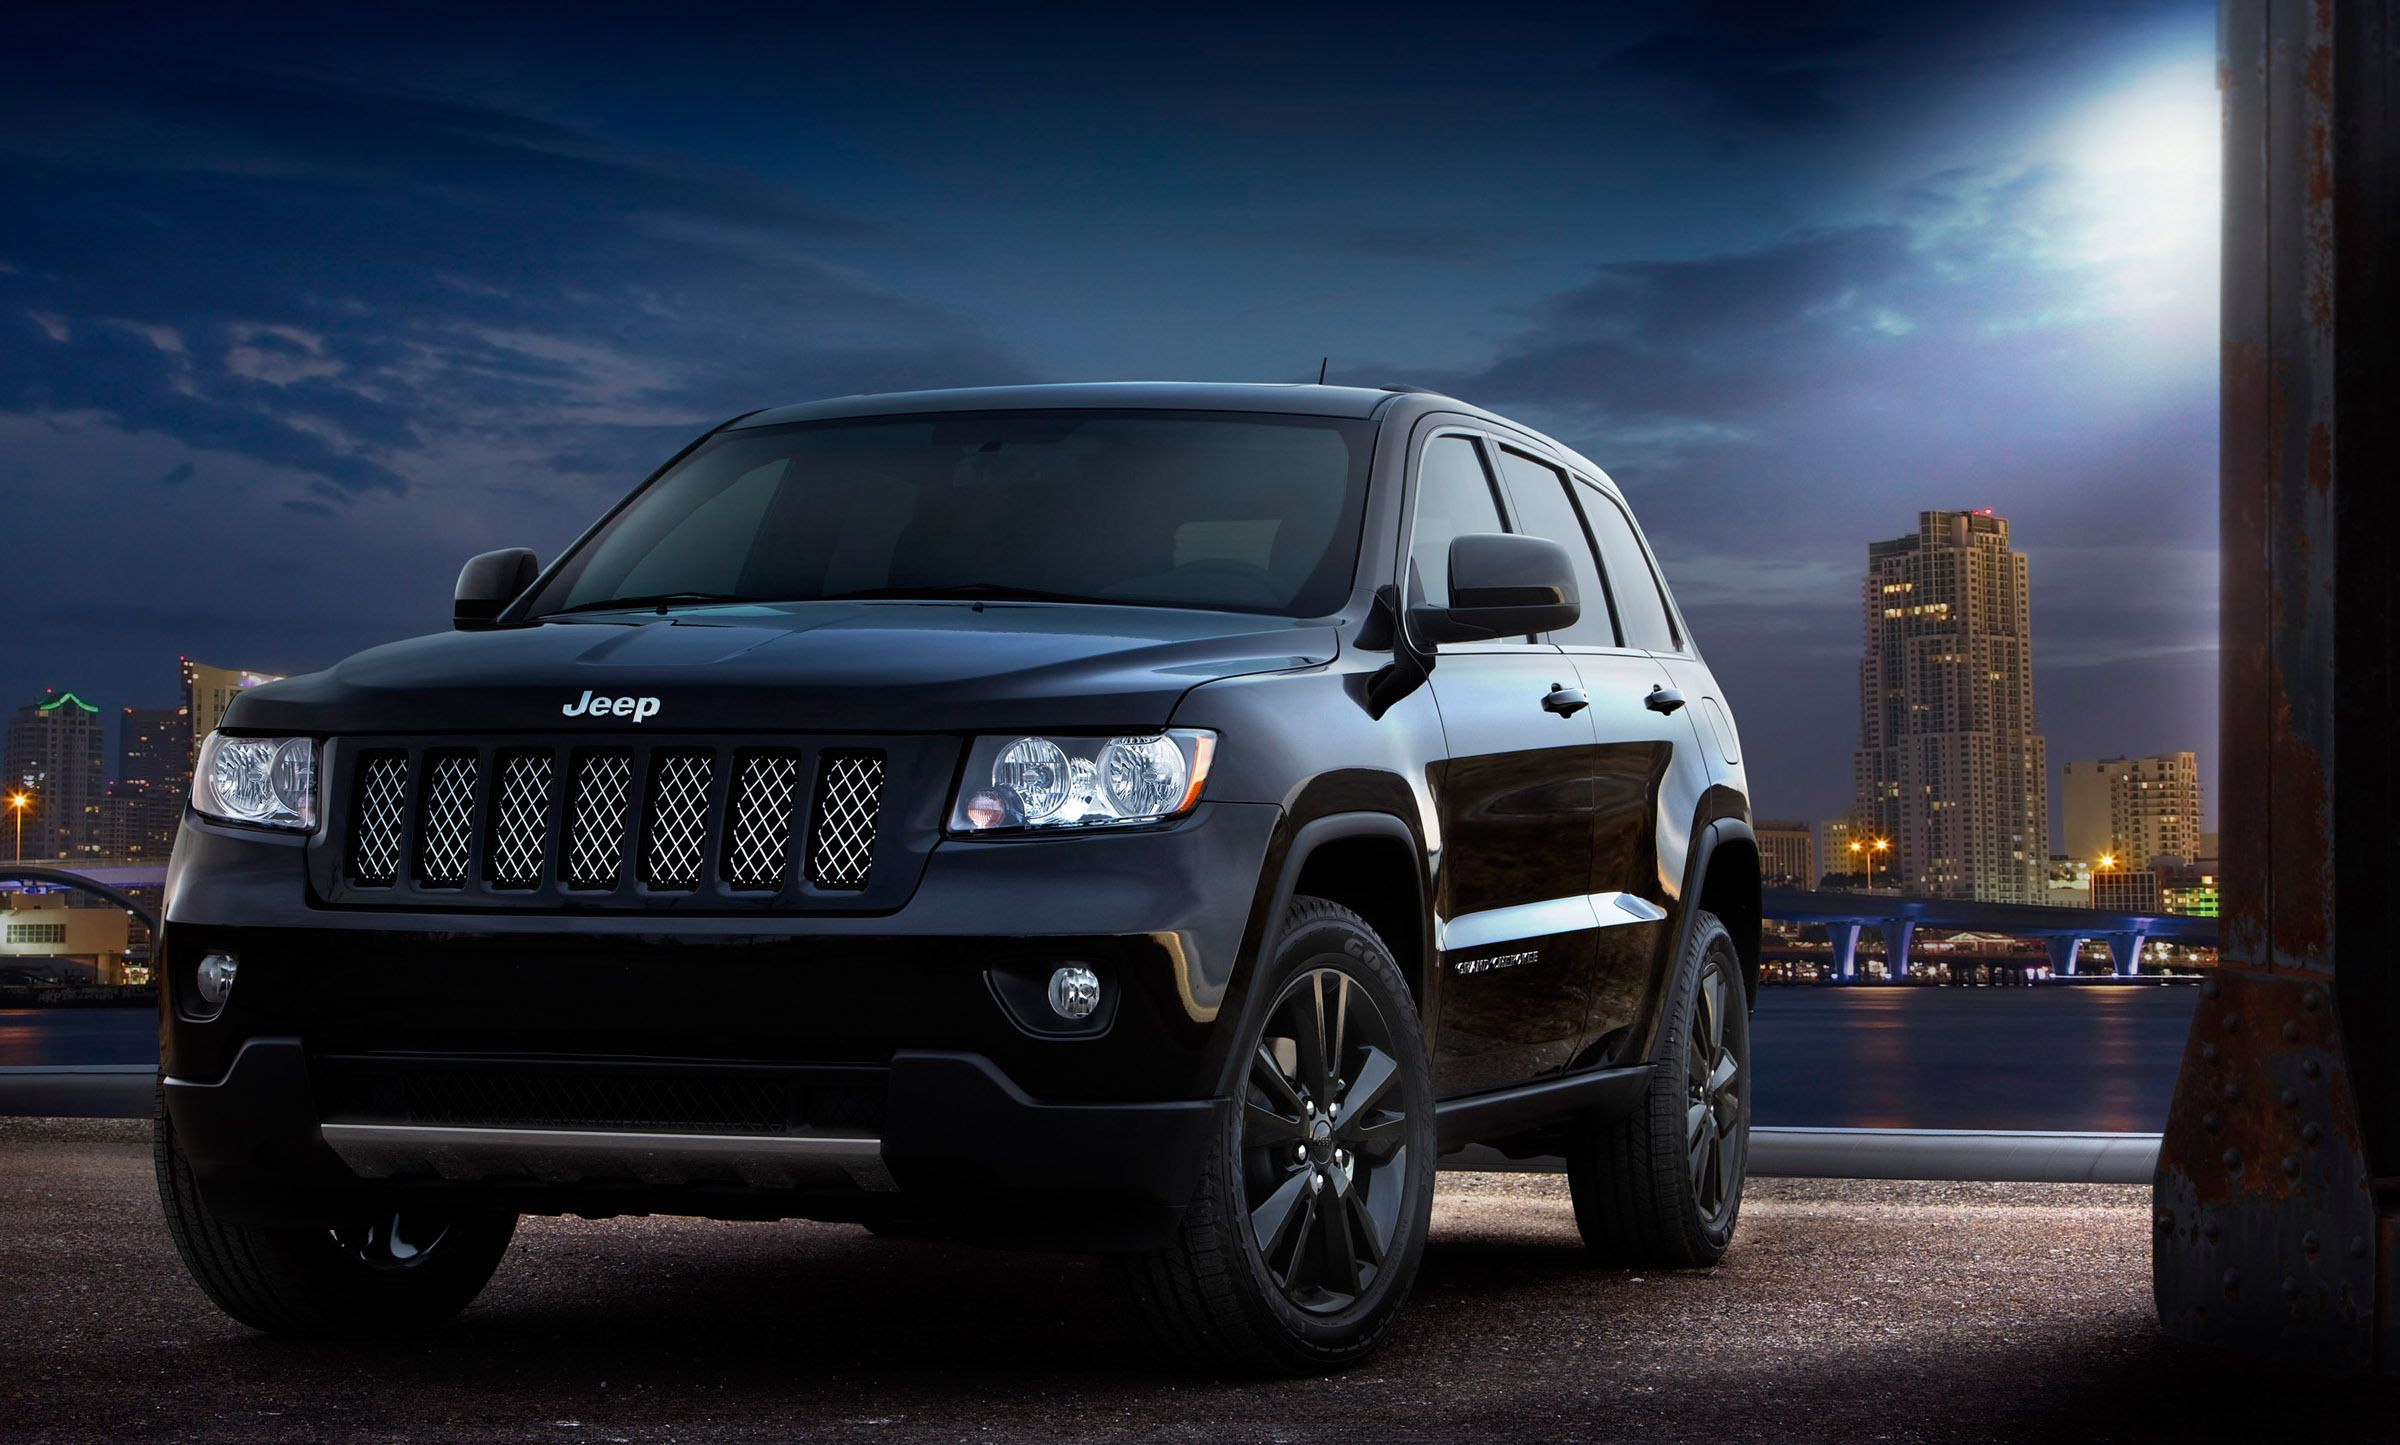 Jeep grand cherokee concept http www nicewallpapers in wallpaper